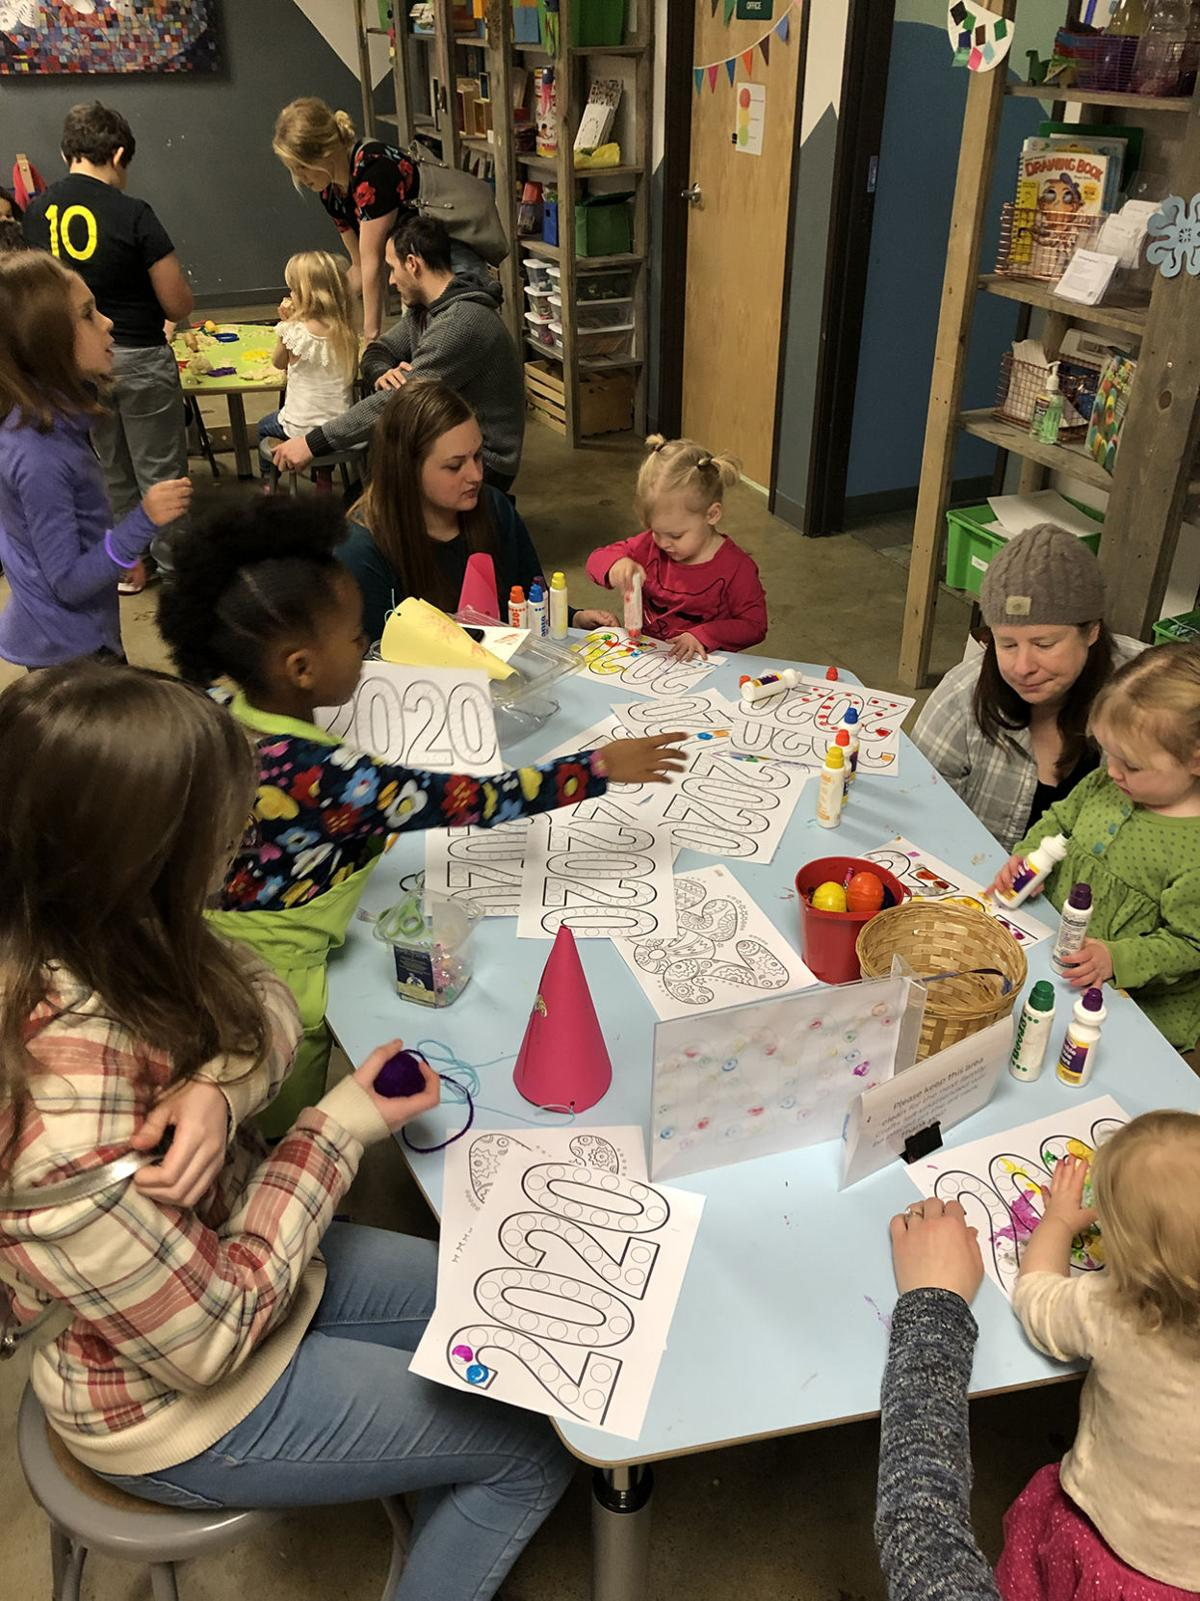 New Year's Eve at Children's Museum